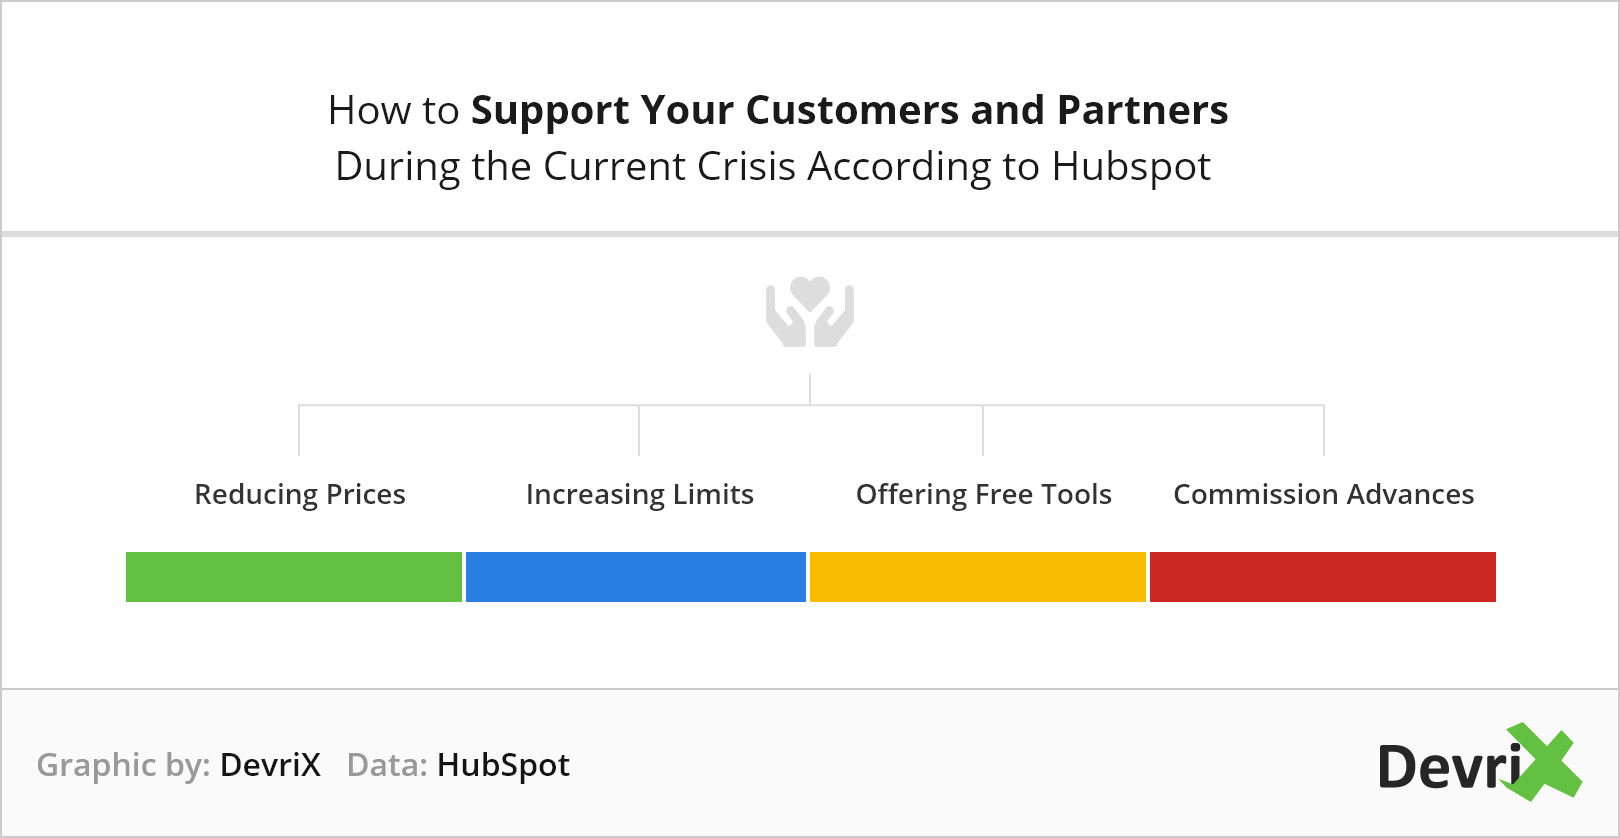 how to support your customers and partners during crisis